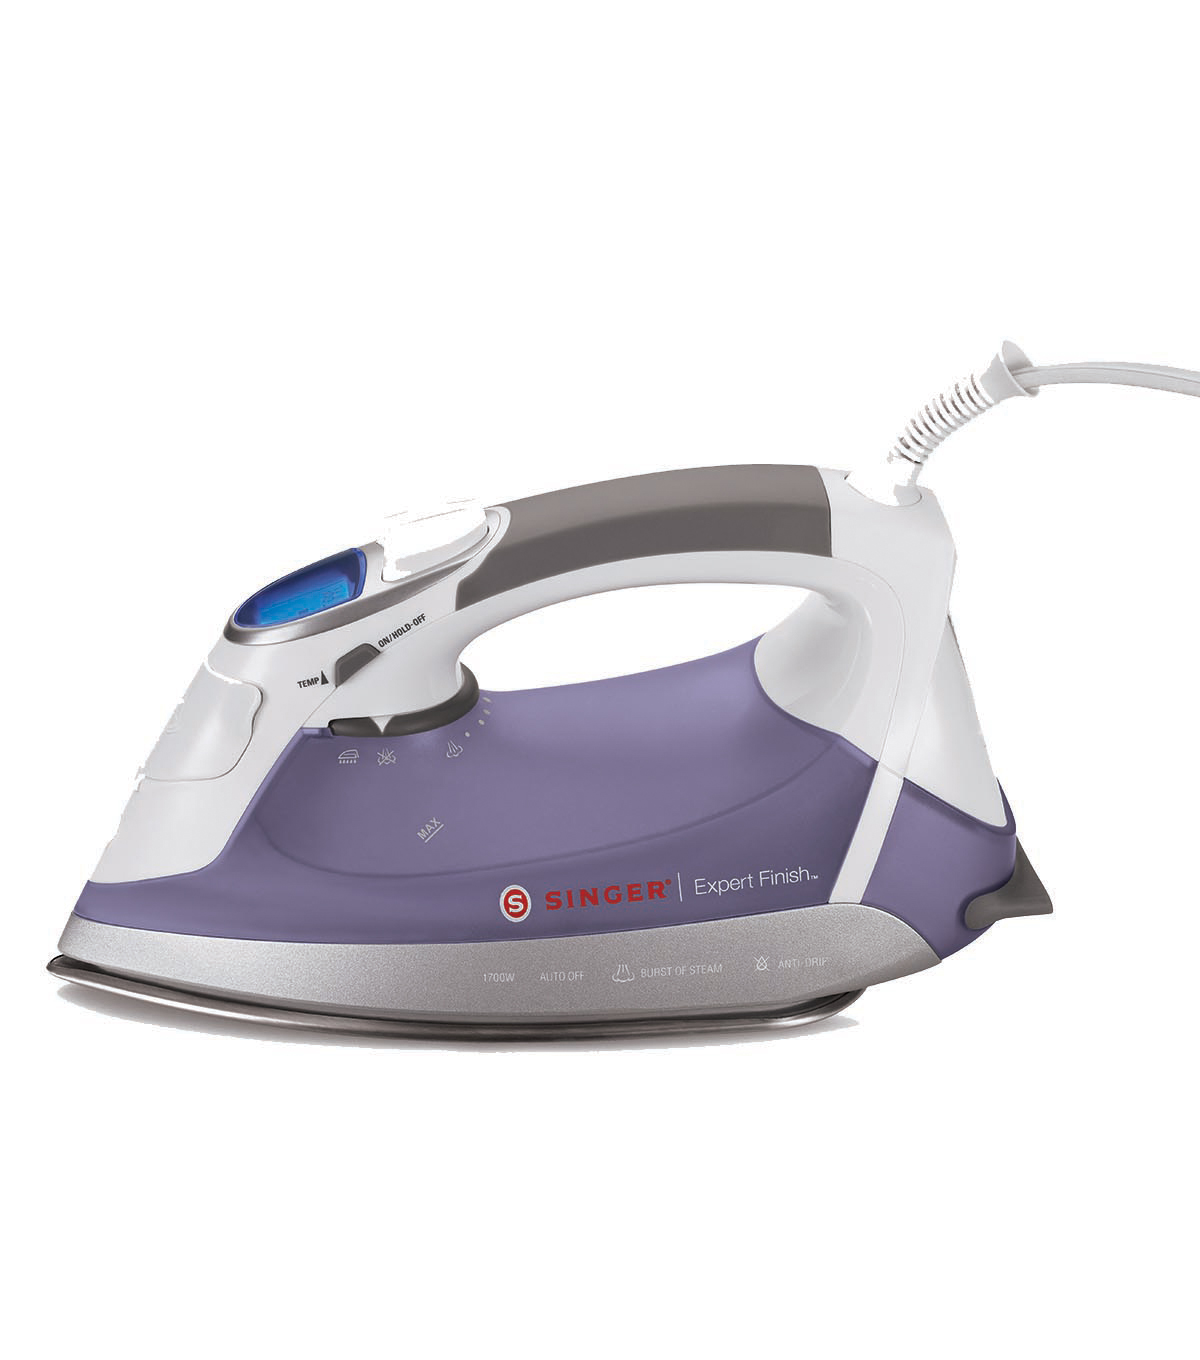 Singer Expert Finish Iron